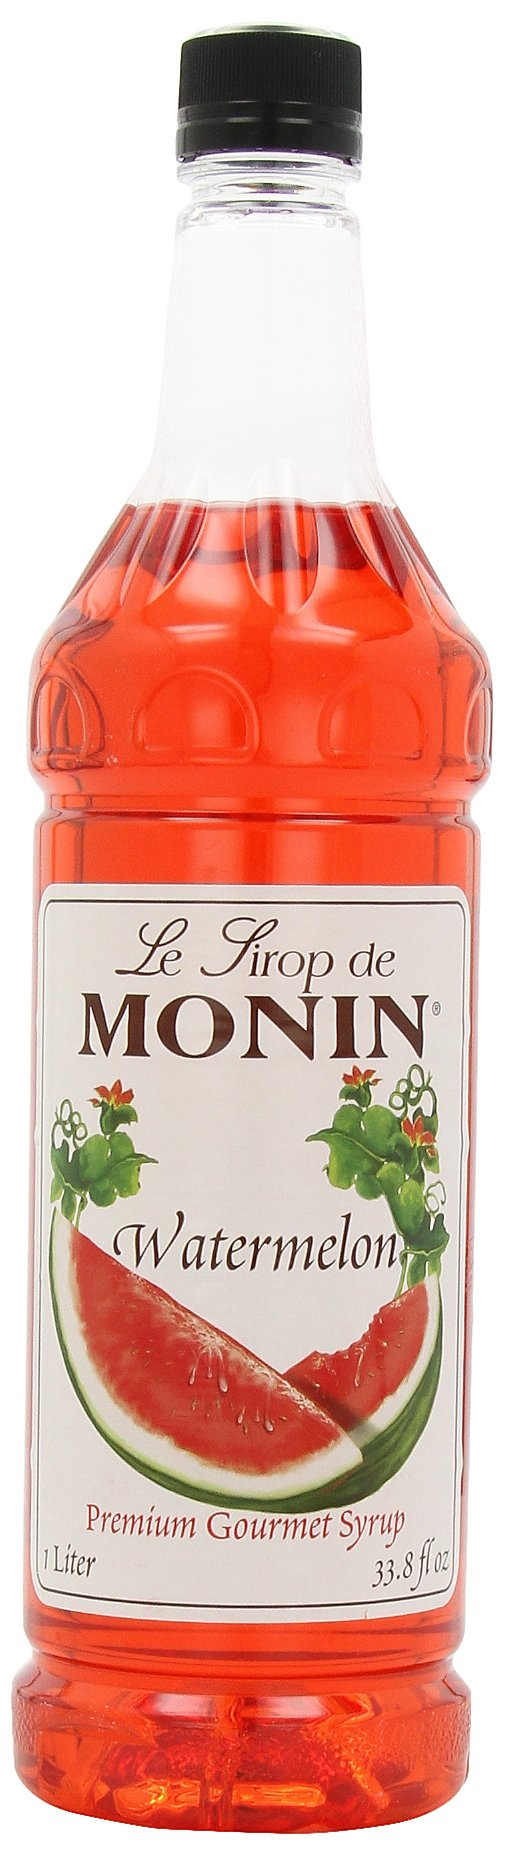 Monin Flavored Syrup, Watermelon, 33.8-Ounce Plastic Bottles (Pack of 4)